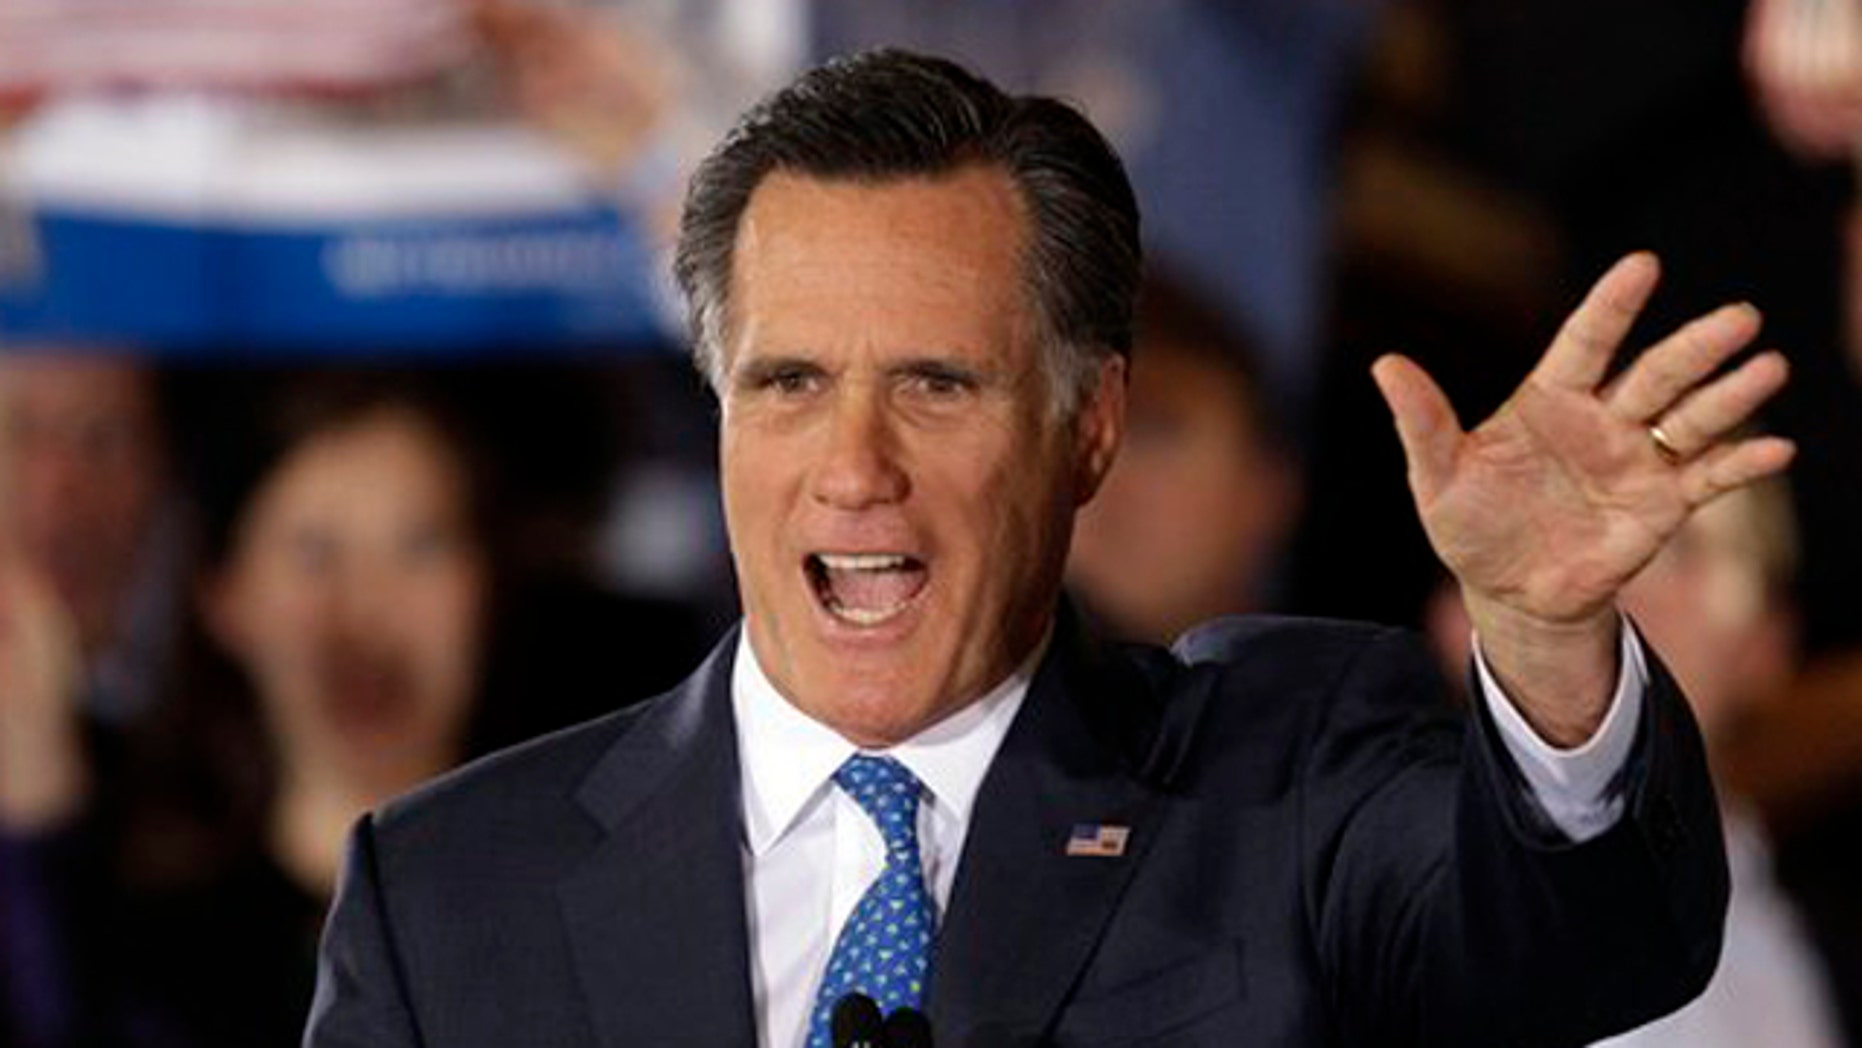 Mar. 6, 2012: Republican presidential candidate, former Massachusetts Gov. Mitt Romney addresses supporters at his Super Tuesday campaign rally in Boston.